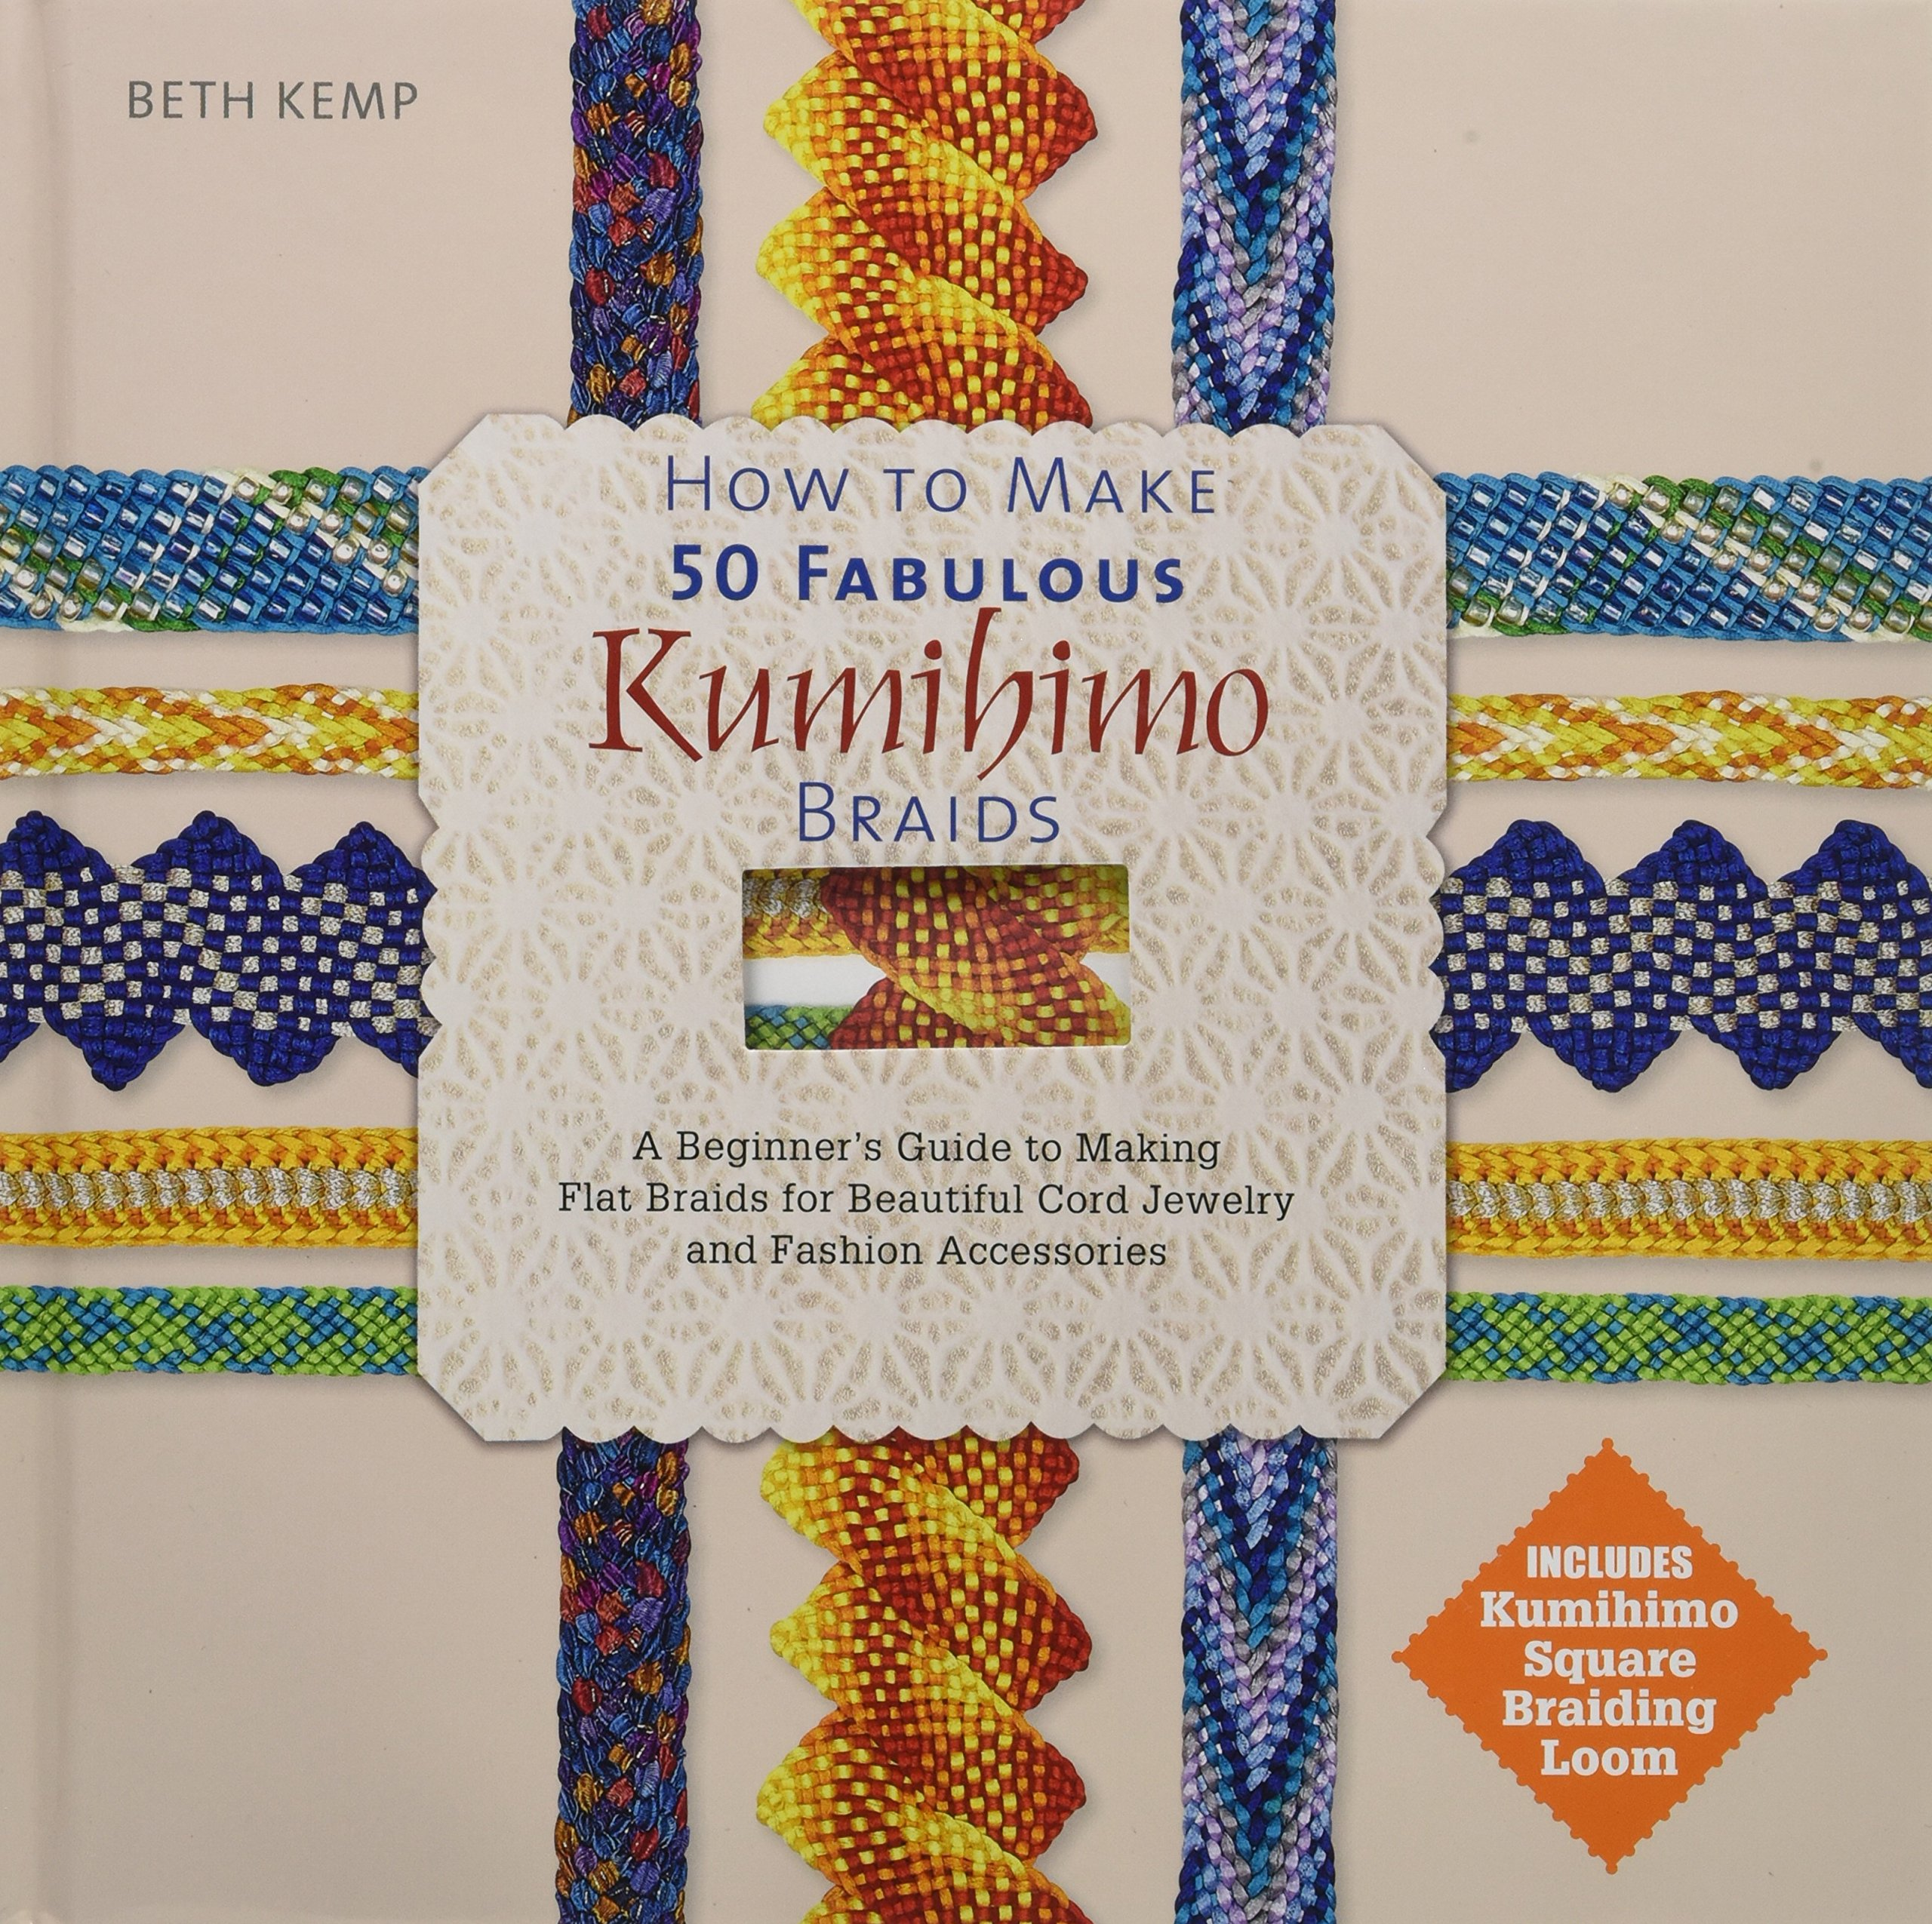 How To Make 50 Fabulous Kumihimo Braids A Beginner S Guide To